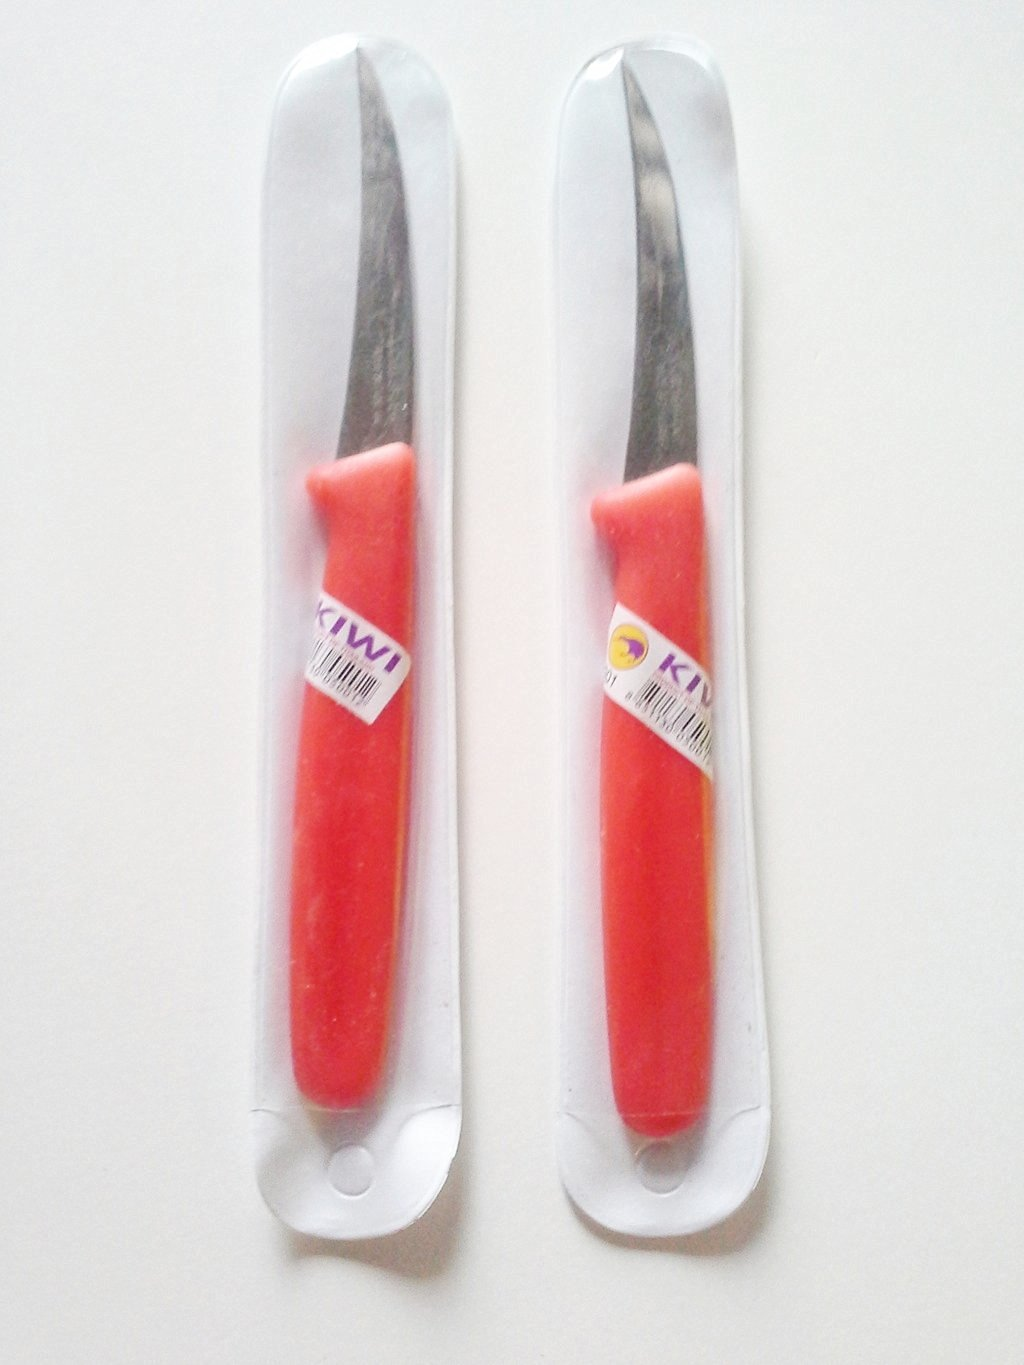 Fruit and Vegetable Carving Knives 2pcs. Thai Product